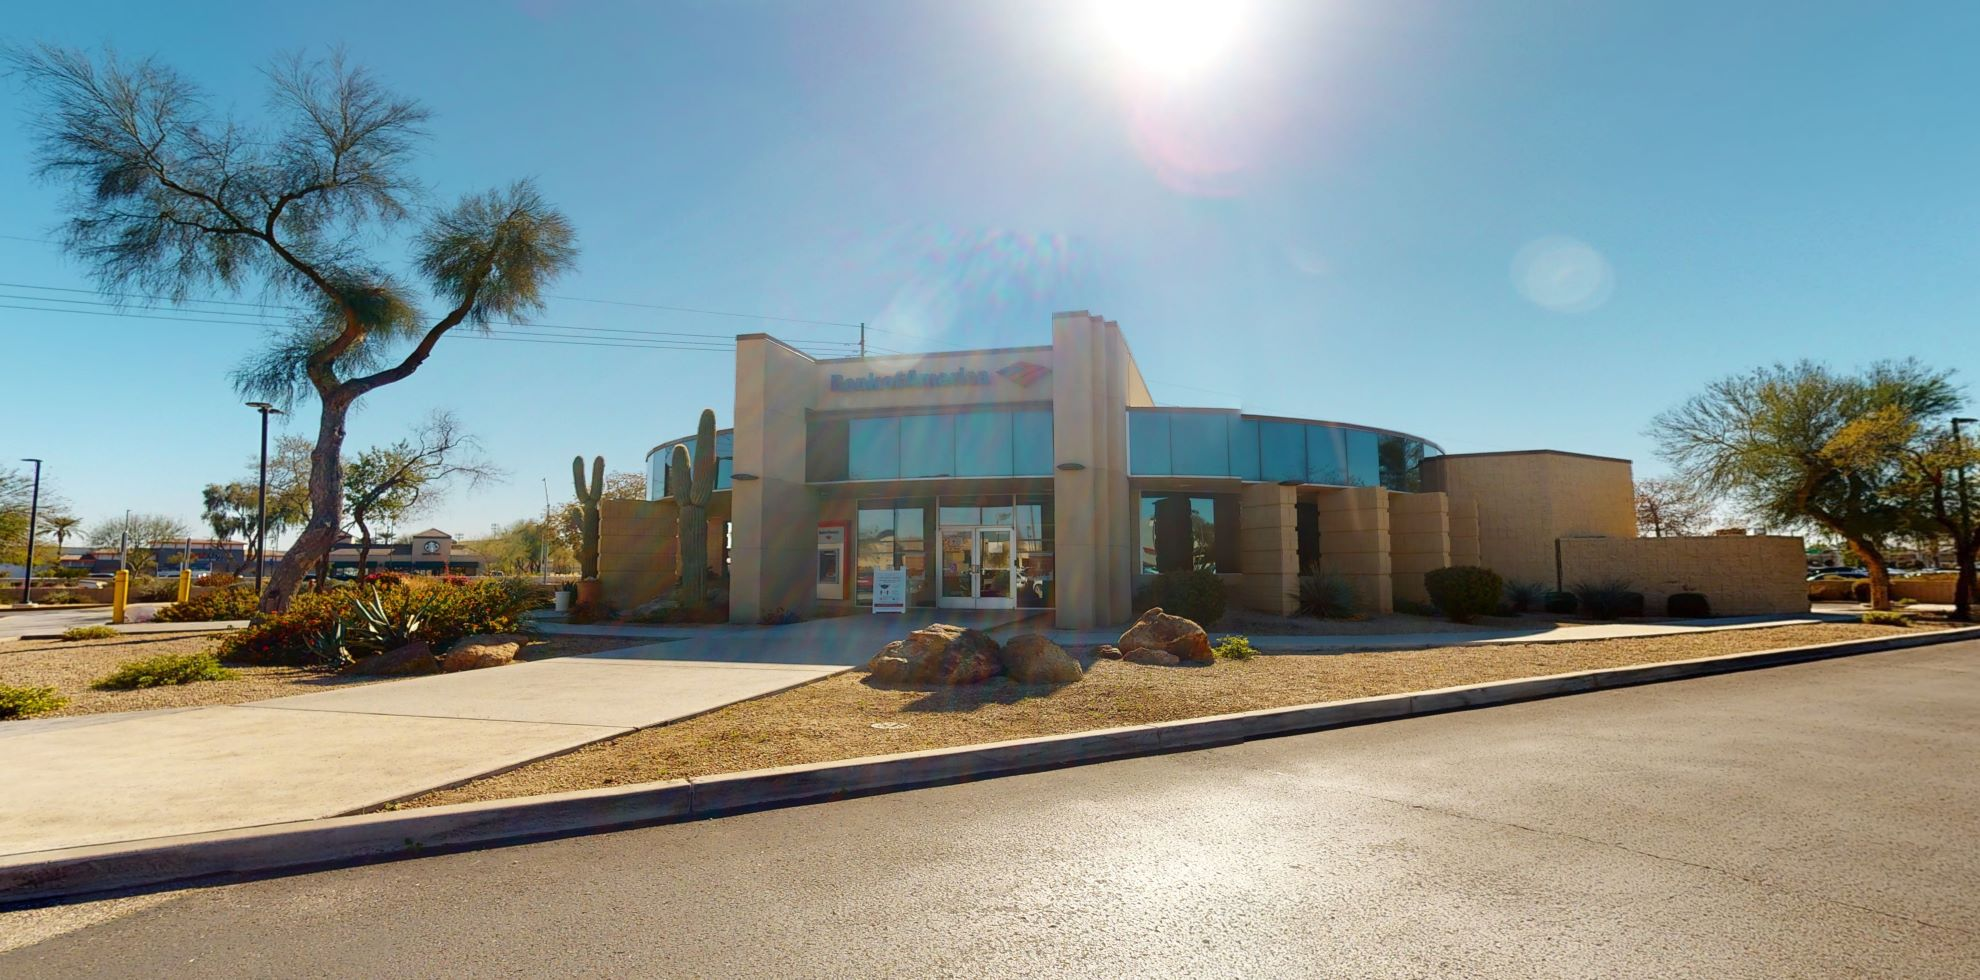 Bank of America financial center with drive-thru ATM | 8258 W Bell Rd, Glendale, AZ 85308